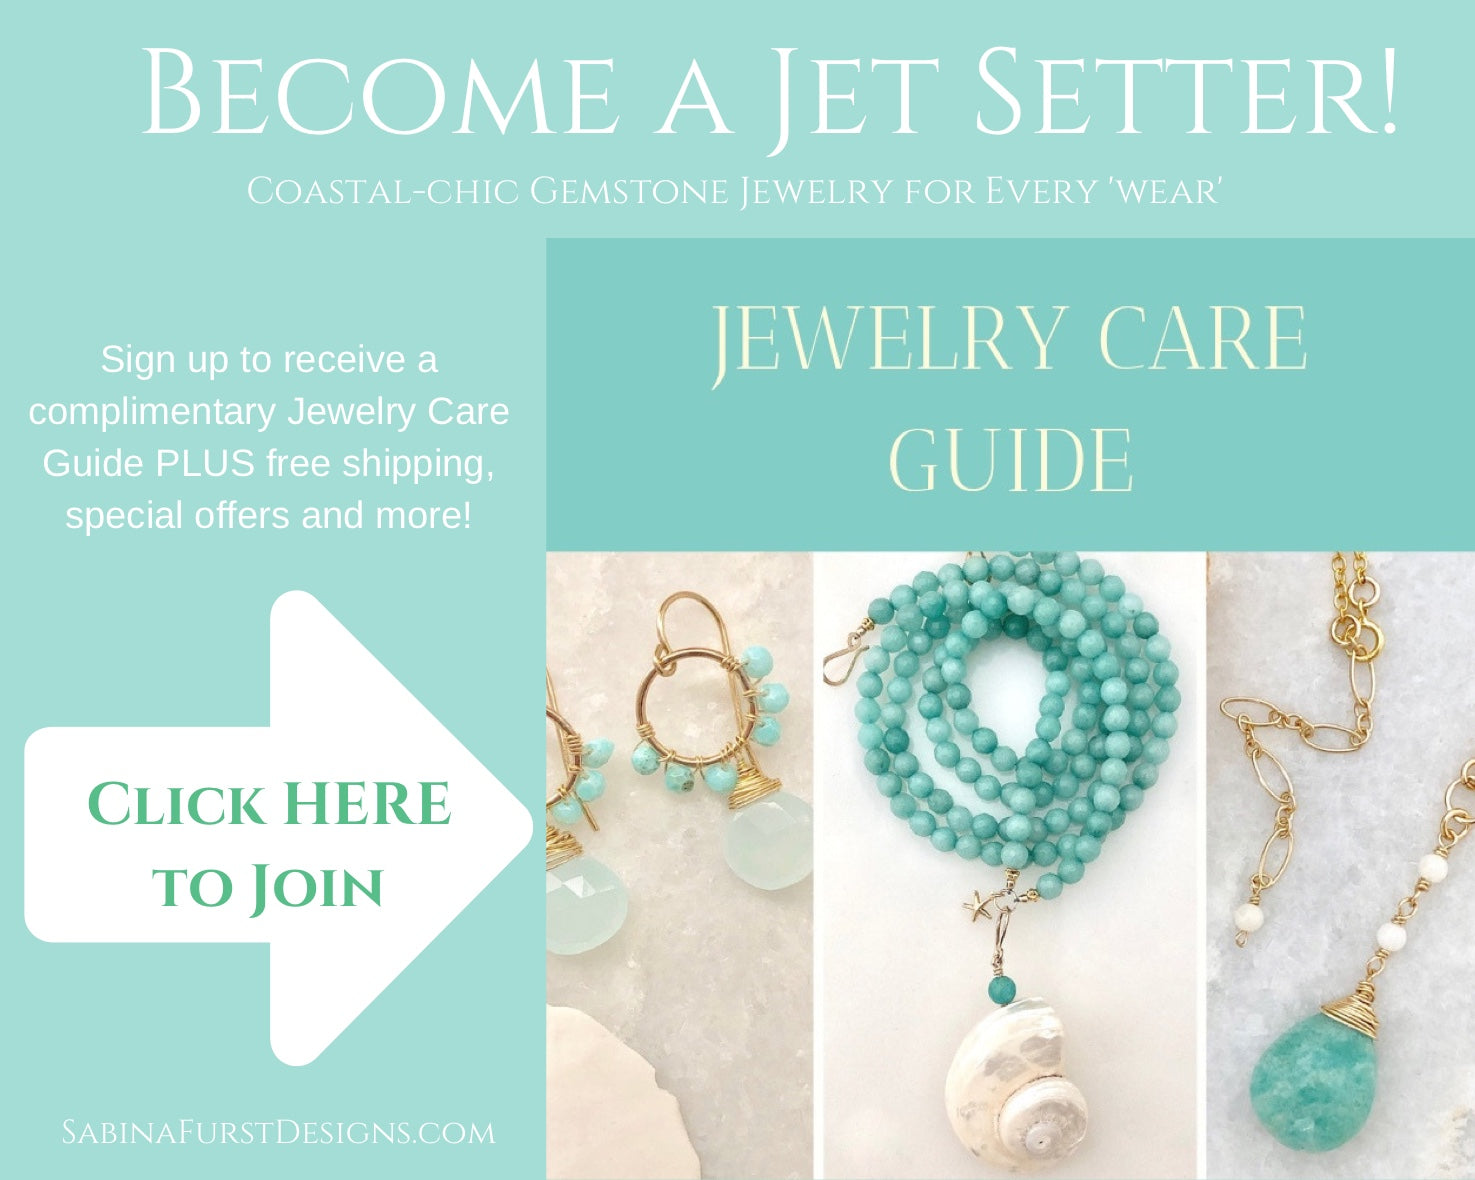 Jewelry Care Guide Sign Up